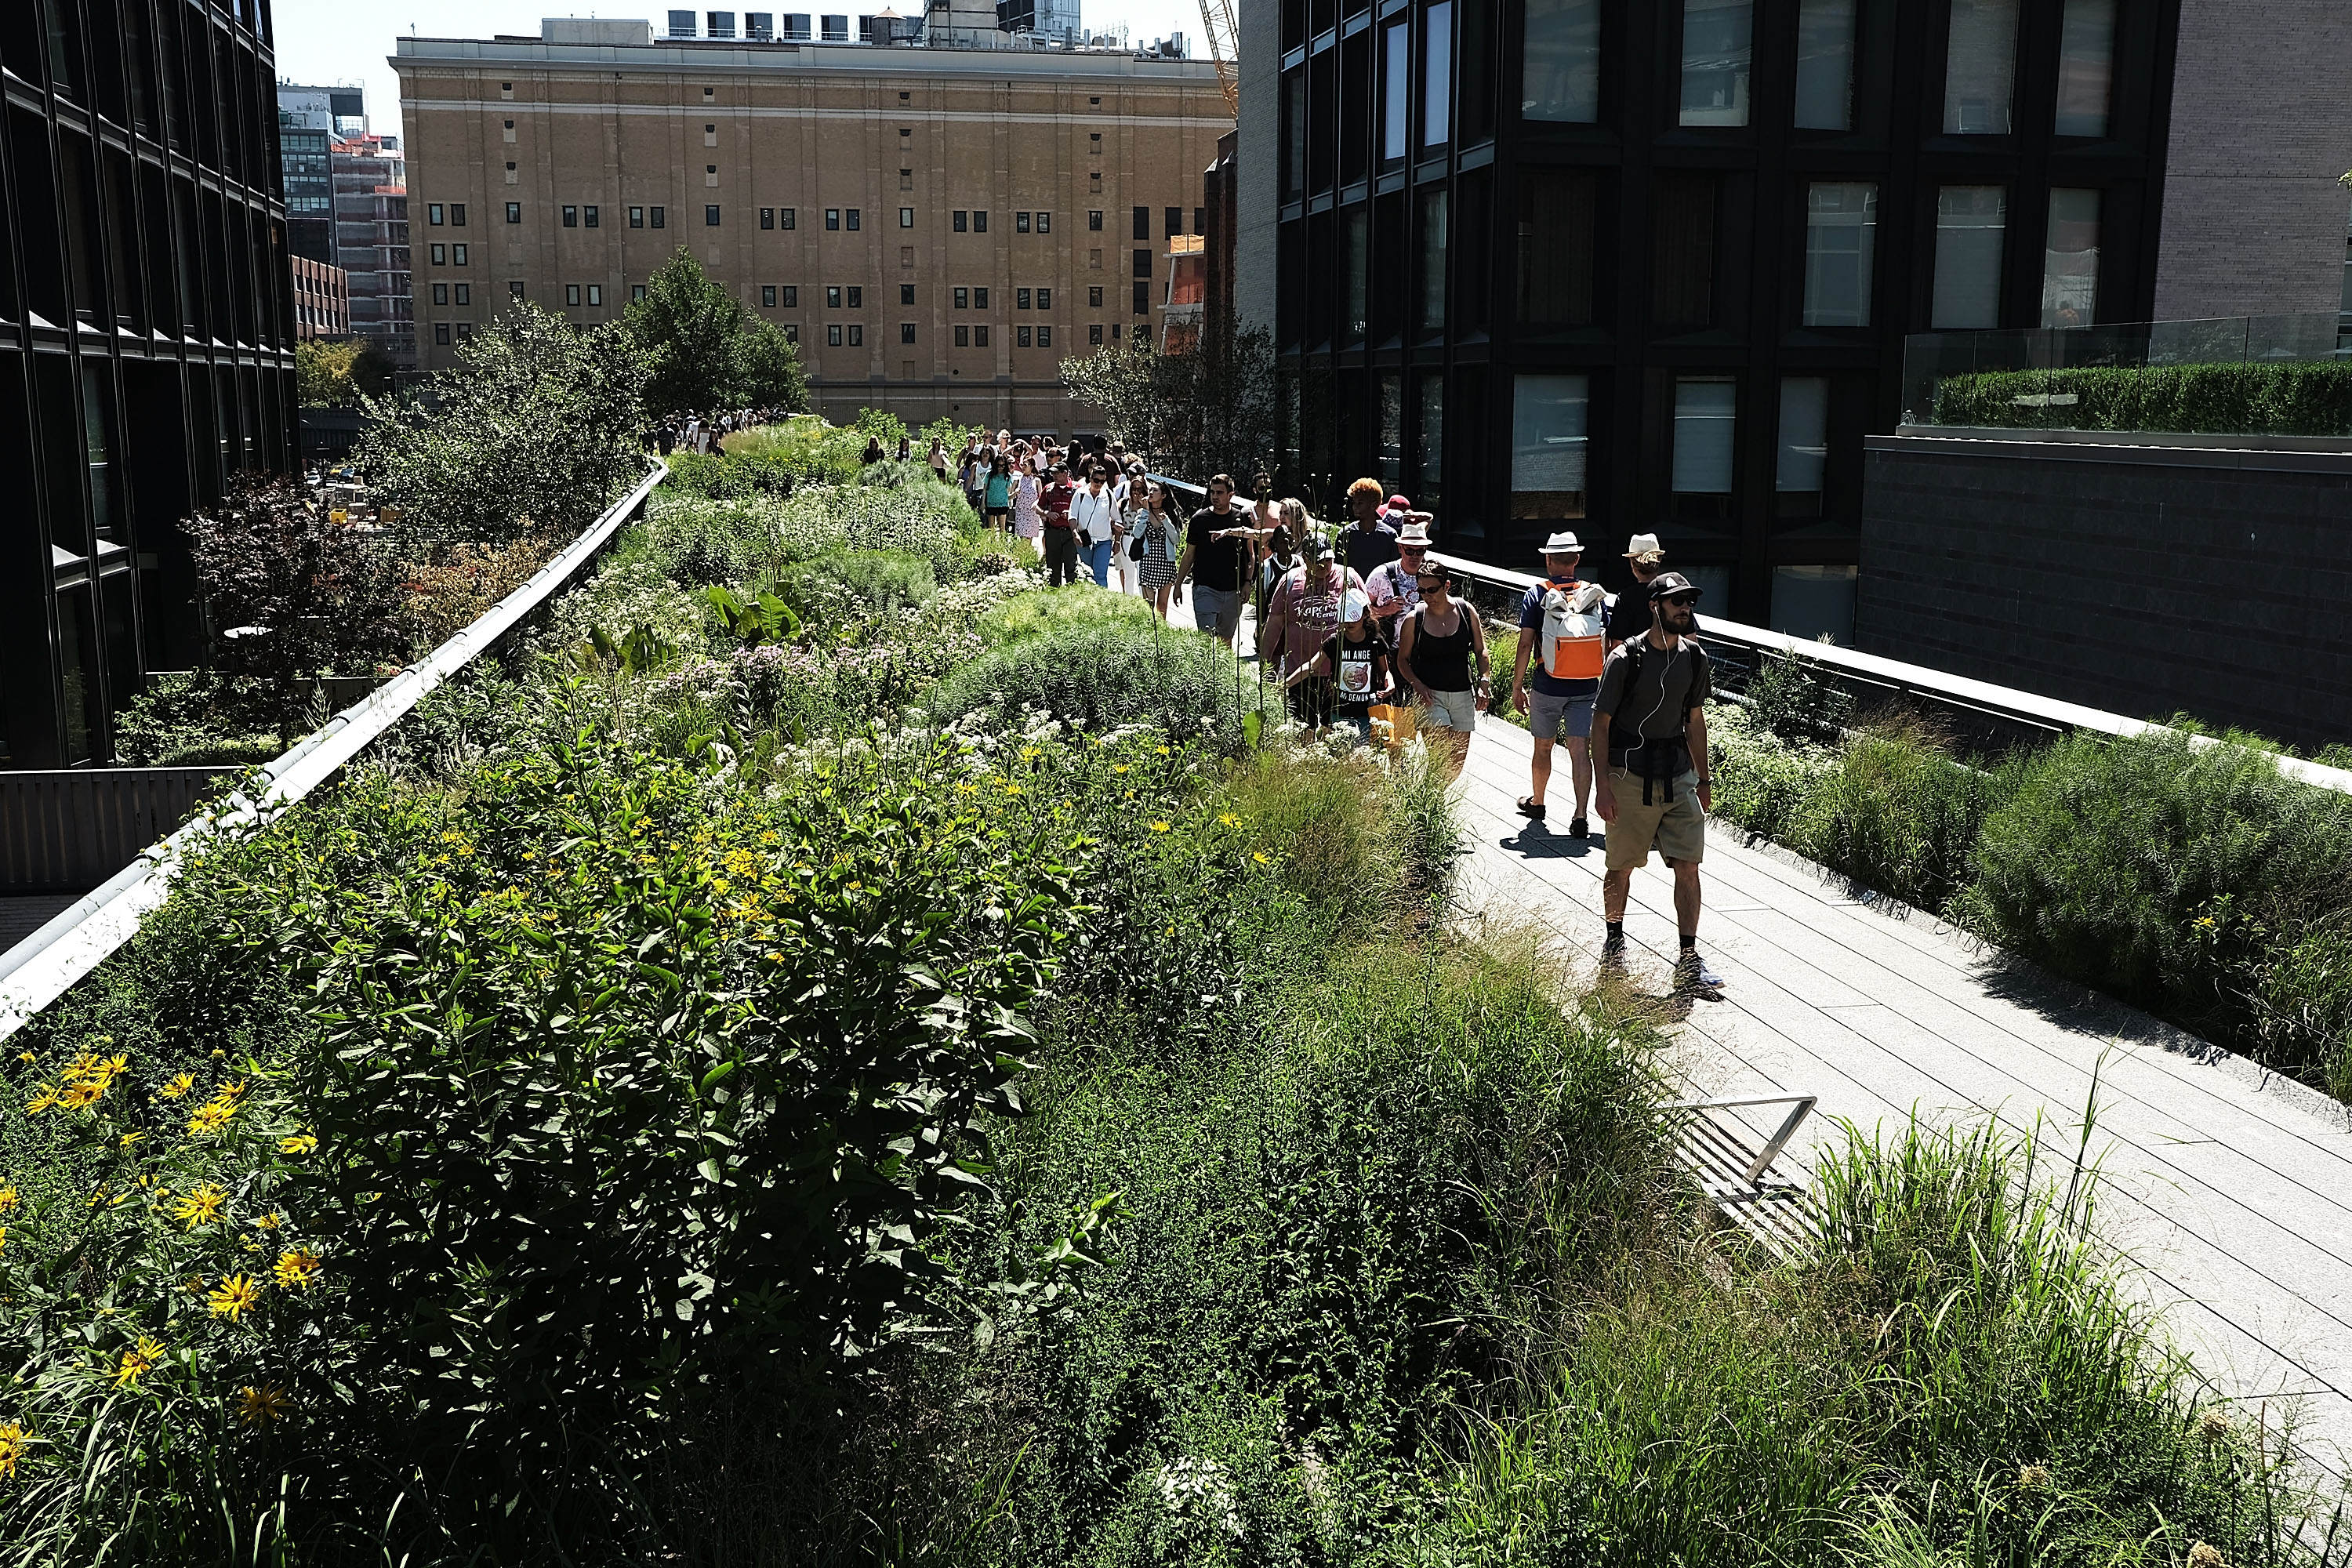 Tourists And Locals Alike Enjoy Summer On New York's High Line